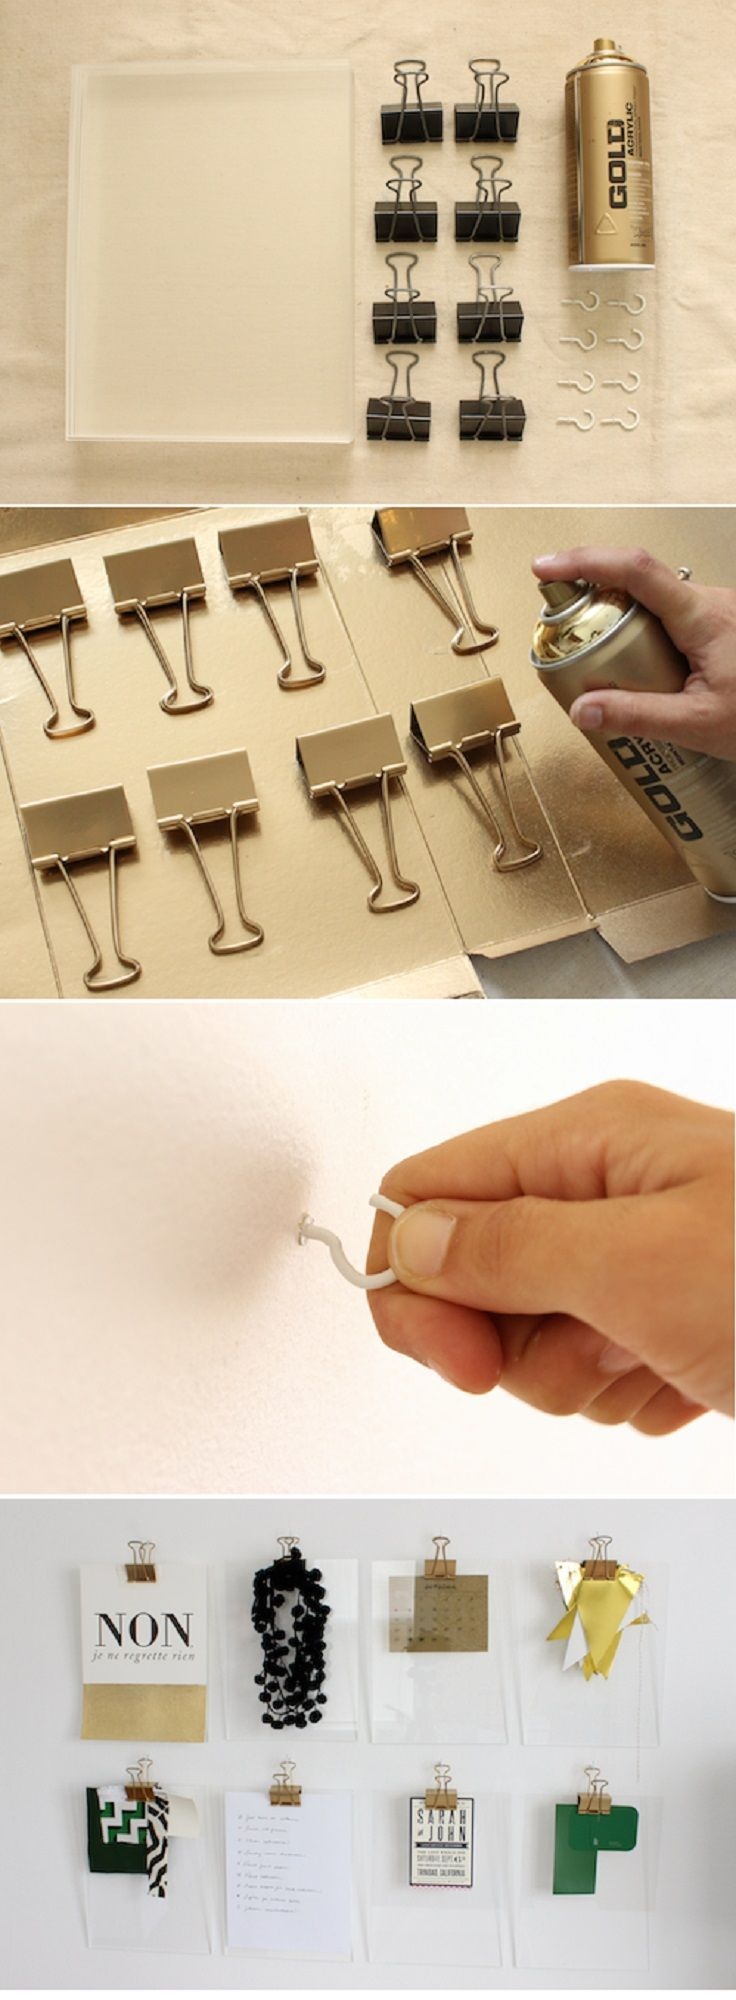 Diy office cubicle door - Top 10 Diy Ideas For Your Office